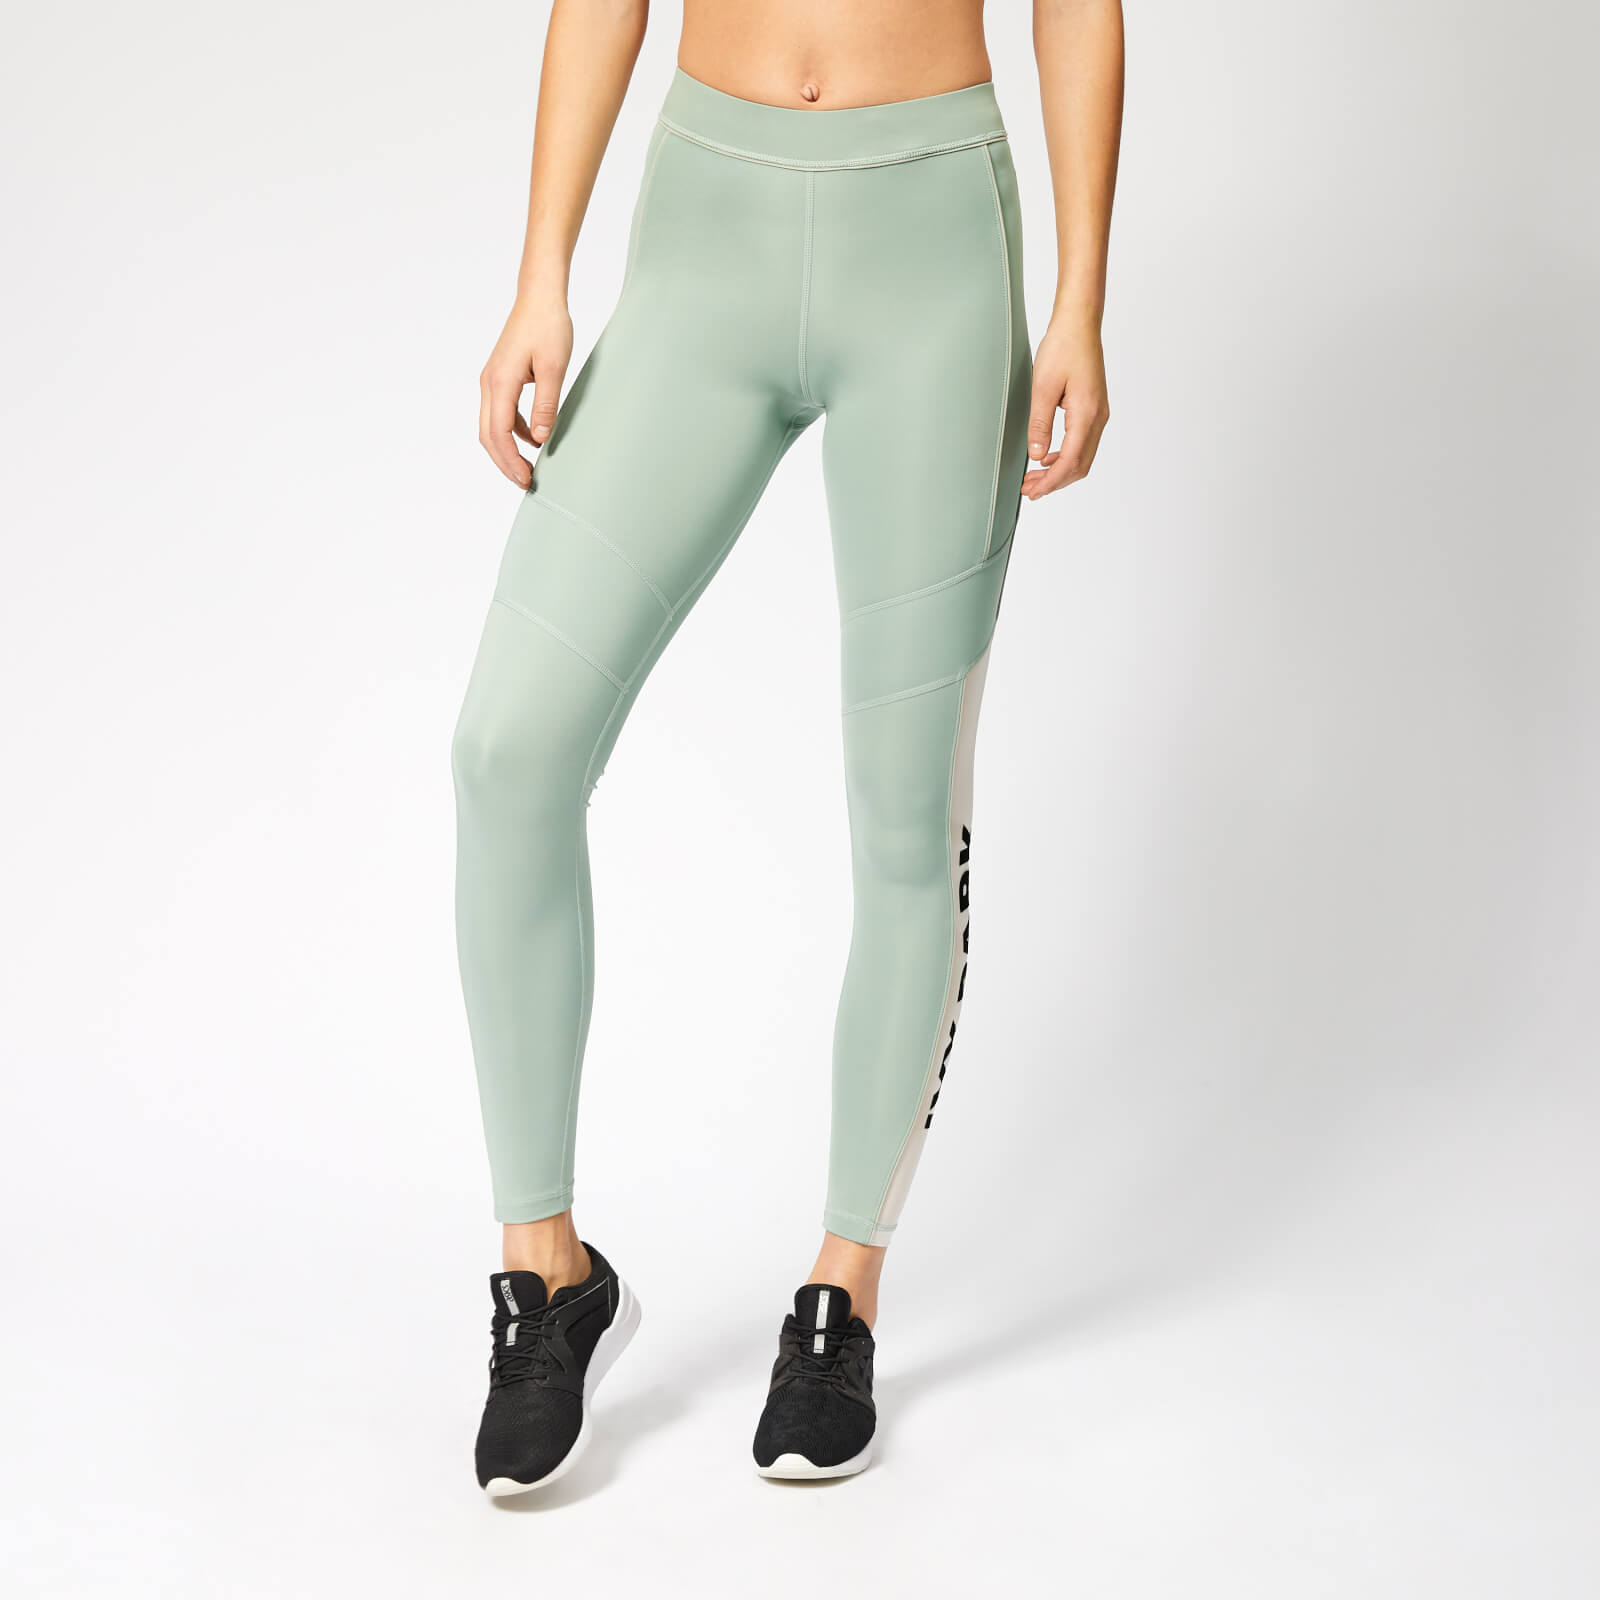 5dbbfd8d324d4b Ivy Park Women's Sheer Flocked Active Logo Leggings - Chinois Green Sports  & Leisure | TheHut.com